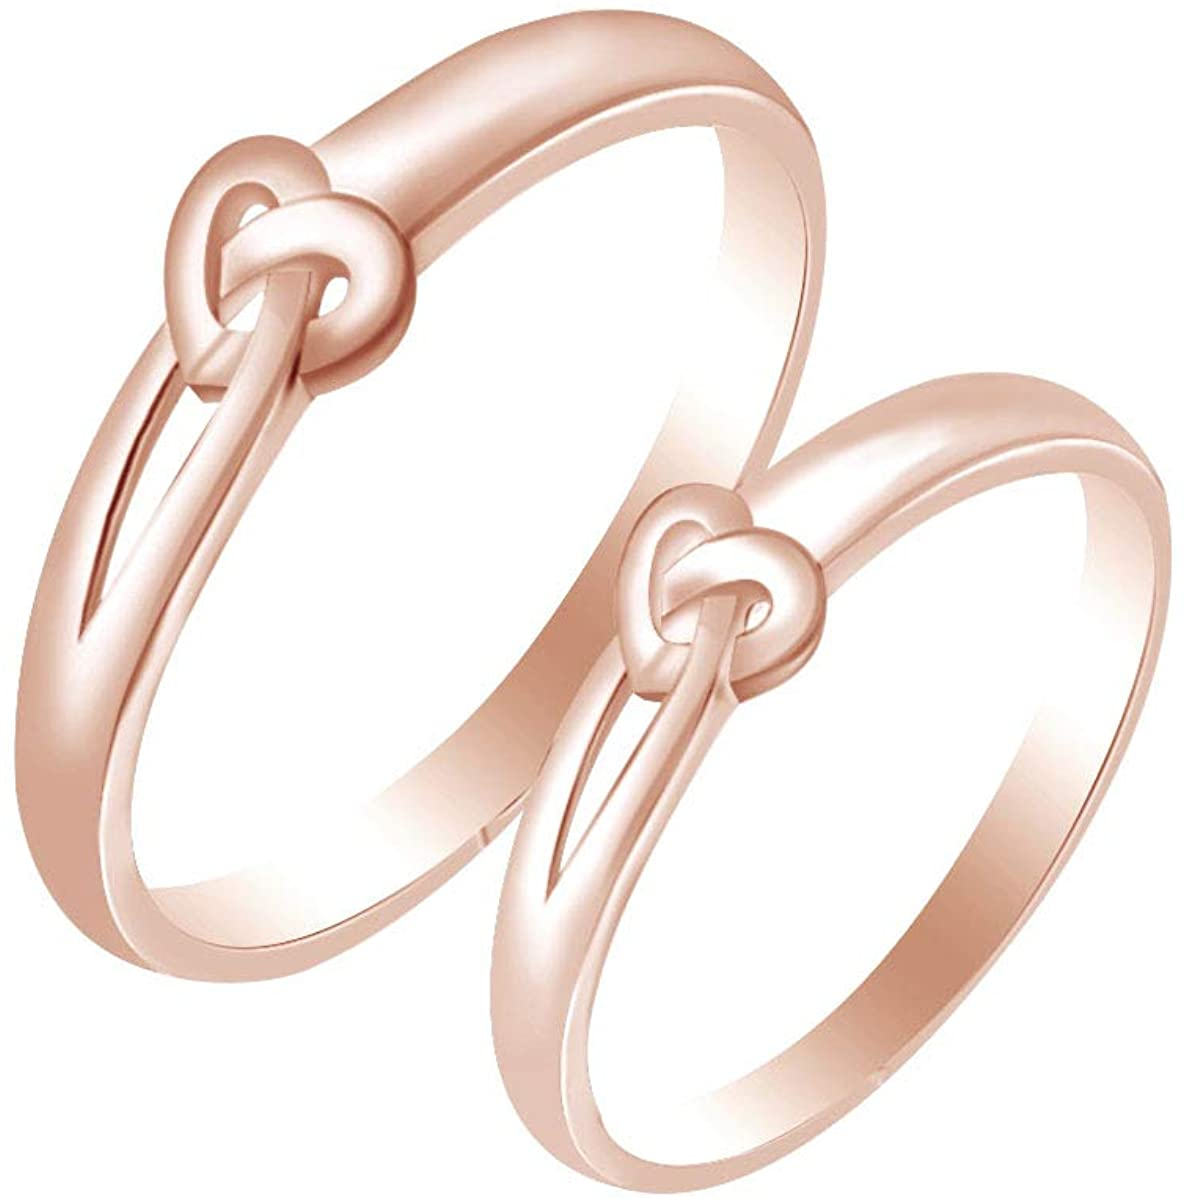 AFFY Love Heart Promise Couple Band Ring 14k Rose Gold Over Sterling Silver